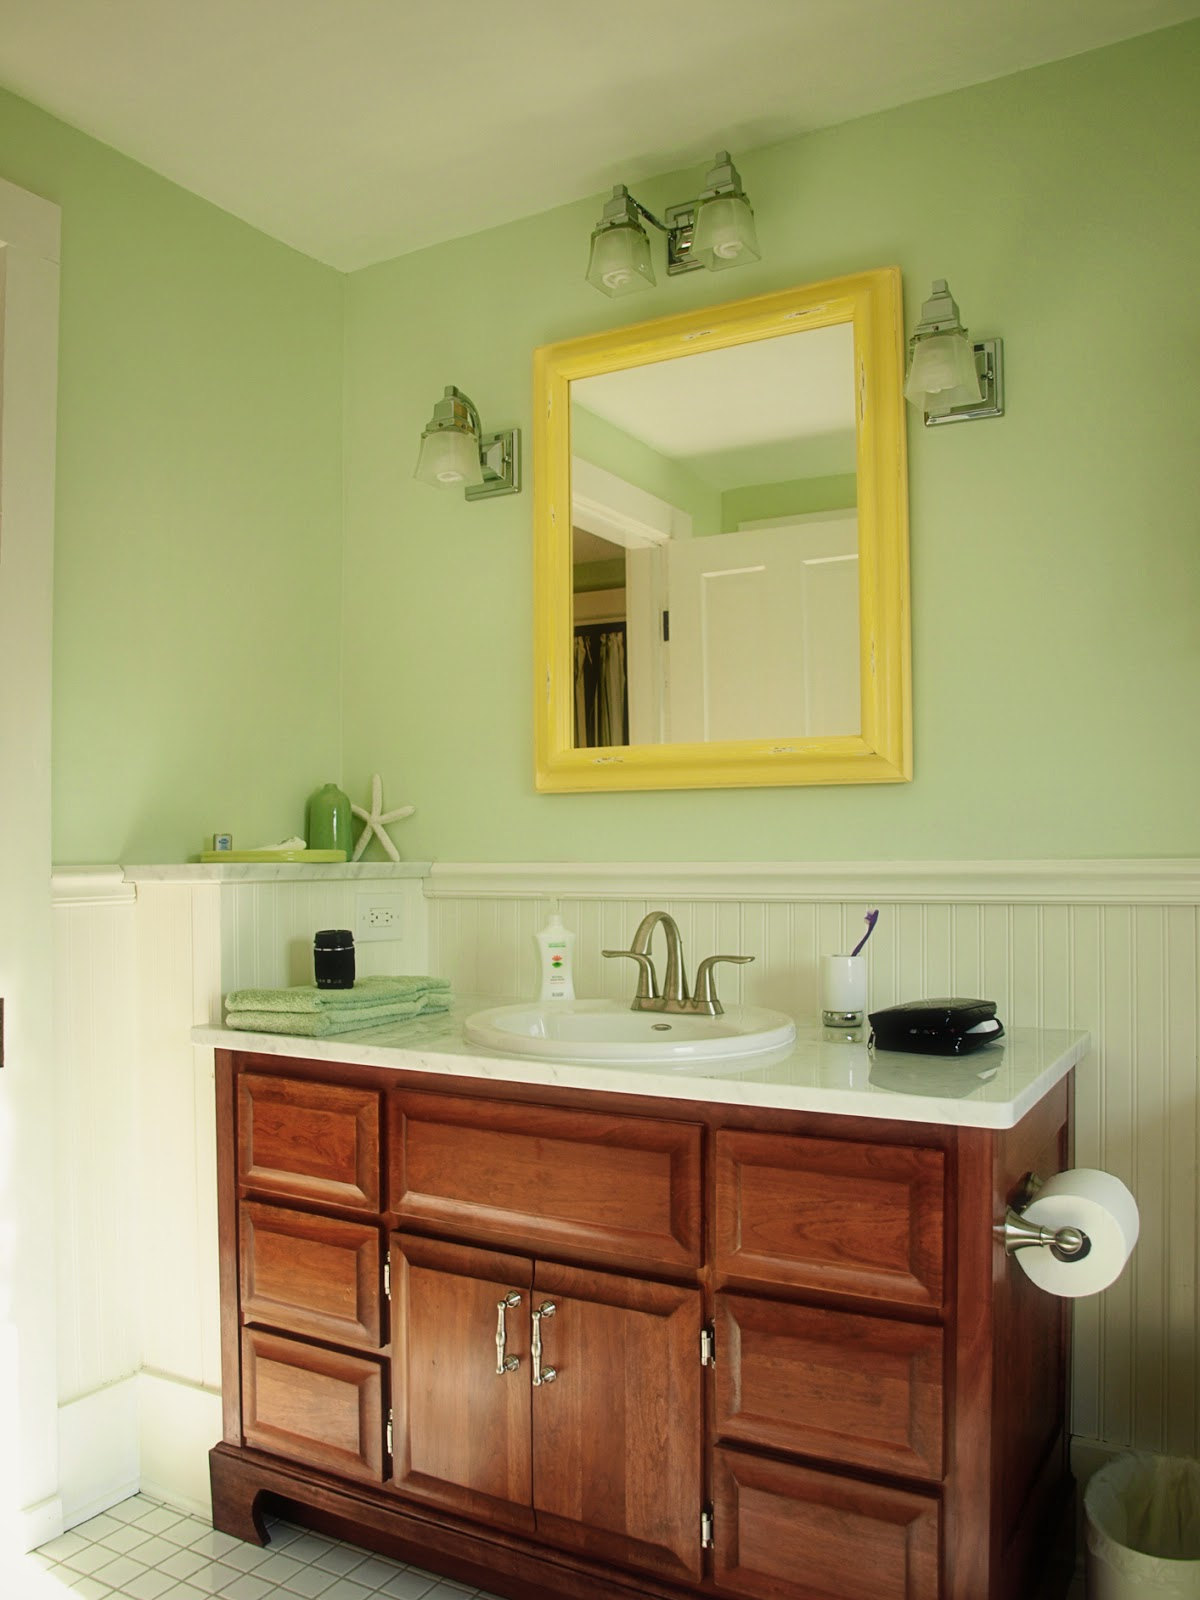 Farmhouse bathroom ideas bathroom designs for Bathroom decor farmhouse